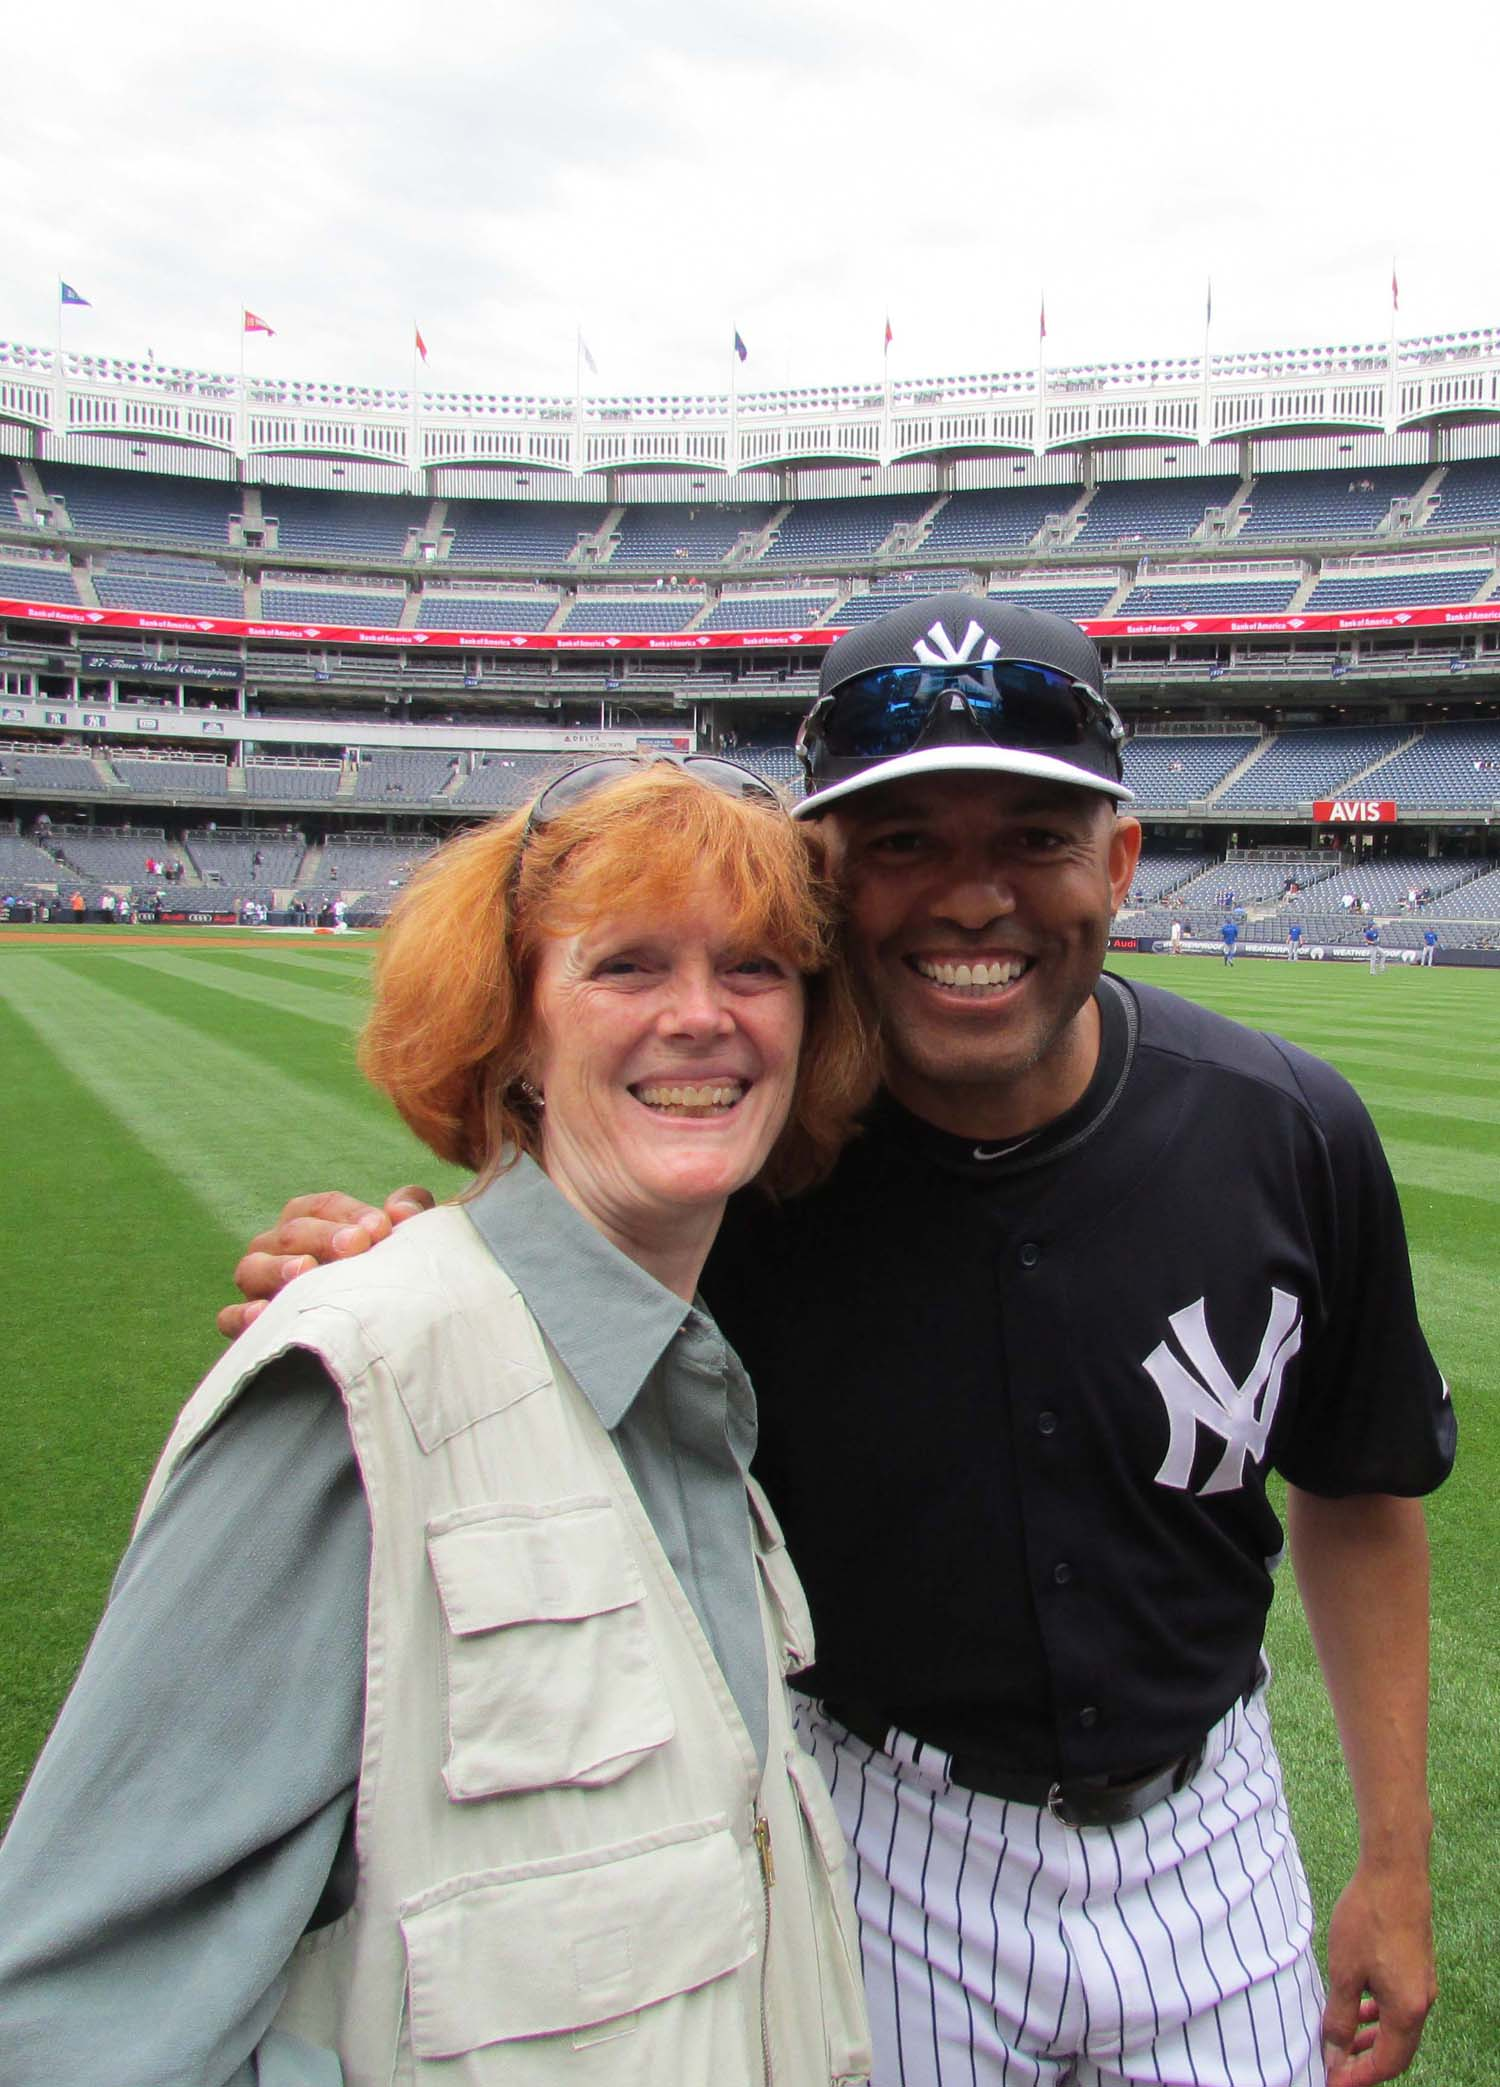 Mariano Rivera graciously let me have a photo with him. Canon Photo Day, Yankee Stadium, May 18, 2013